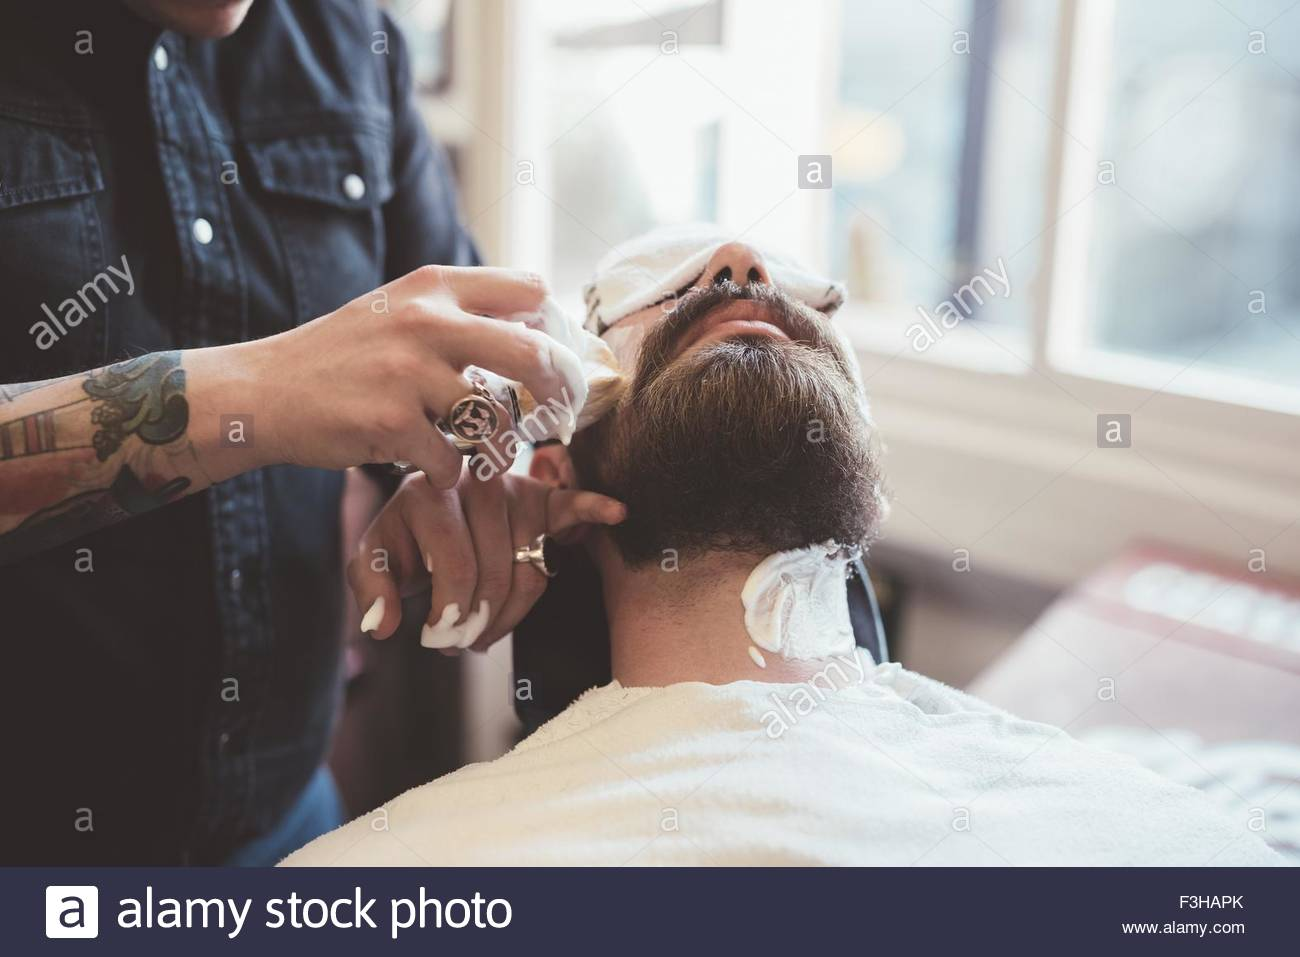 Barber applying shaving cream to clients face in barber shop - Stock Image